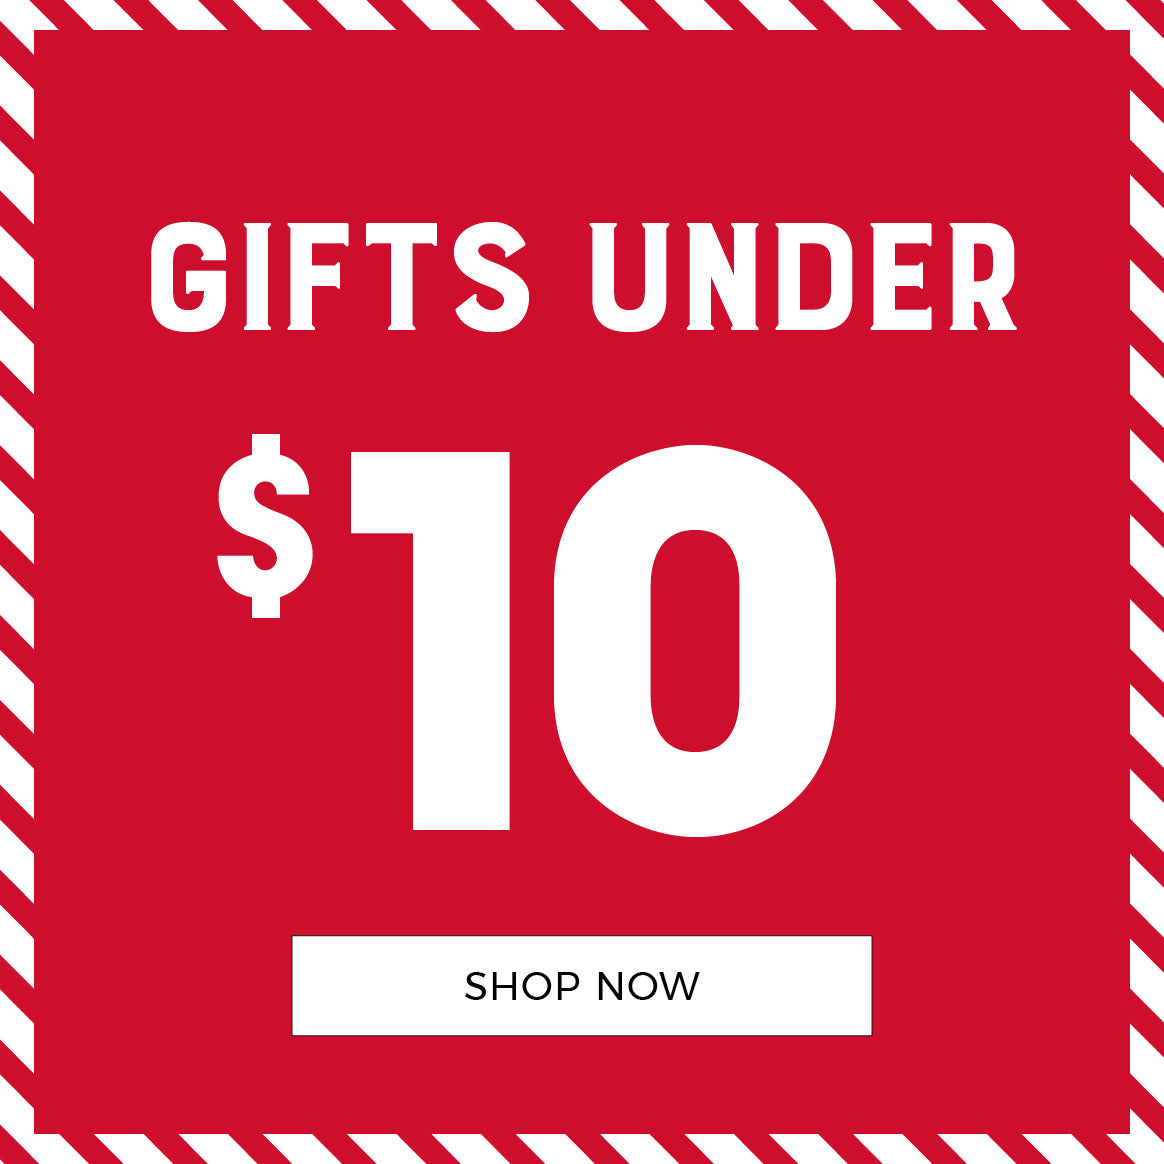 Stitches | Gifts Under $10 - Shop Now